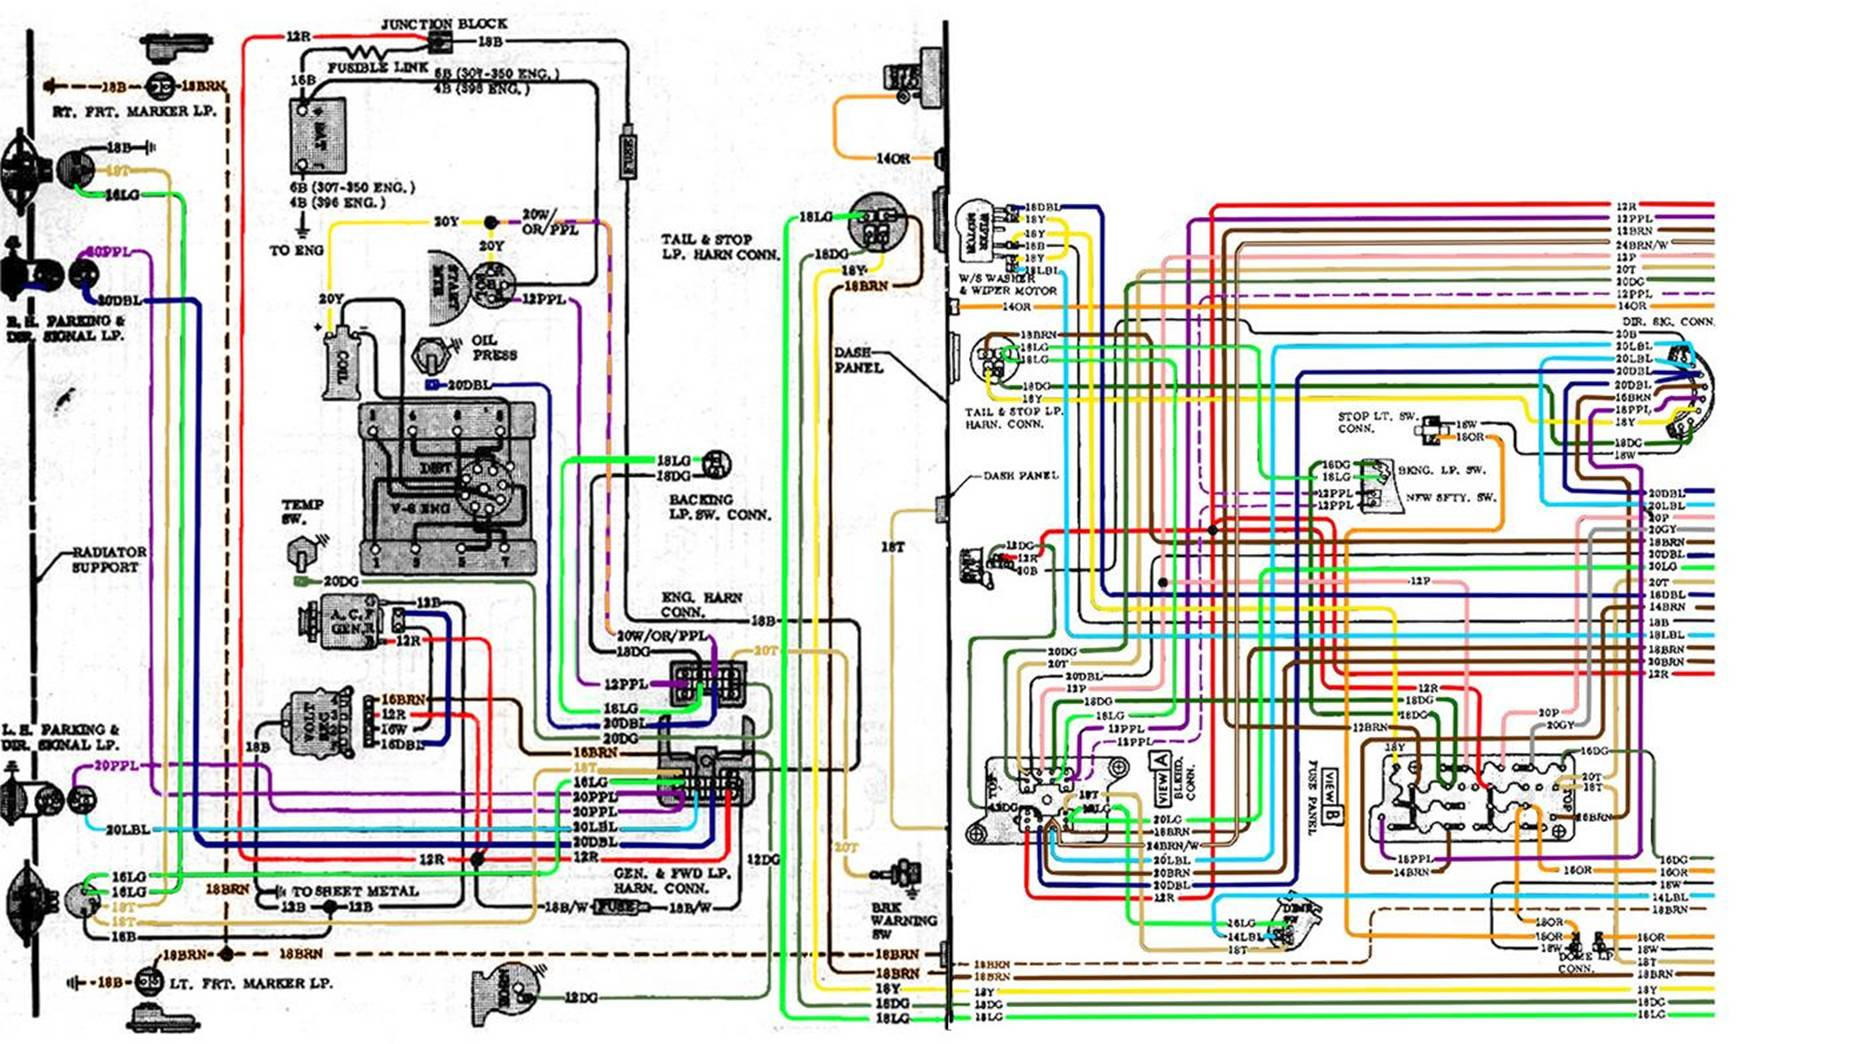 hight resolution of 67 chevelle wiring diagram wiring diagram for you 1967 chevy chevelle wiring diagram 1967 chevelle wiring diagram